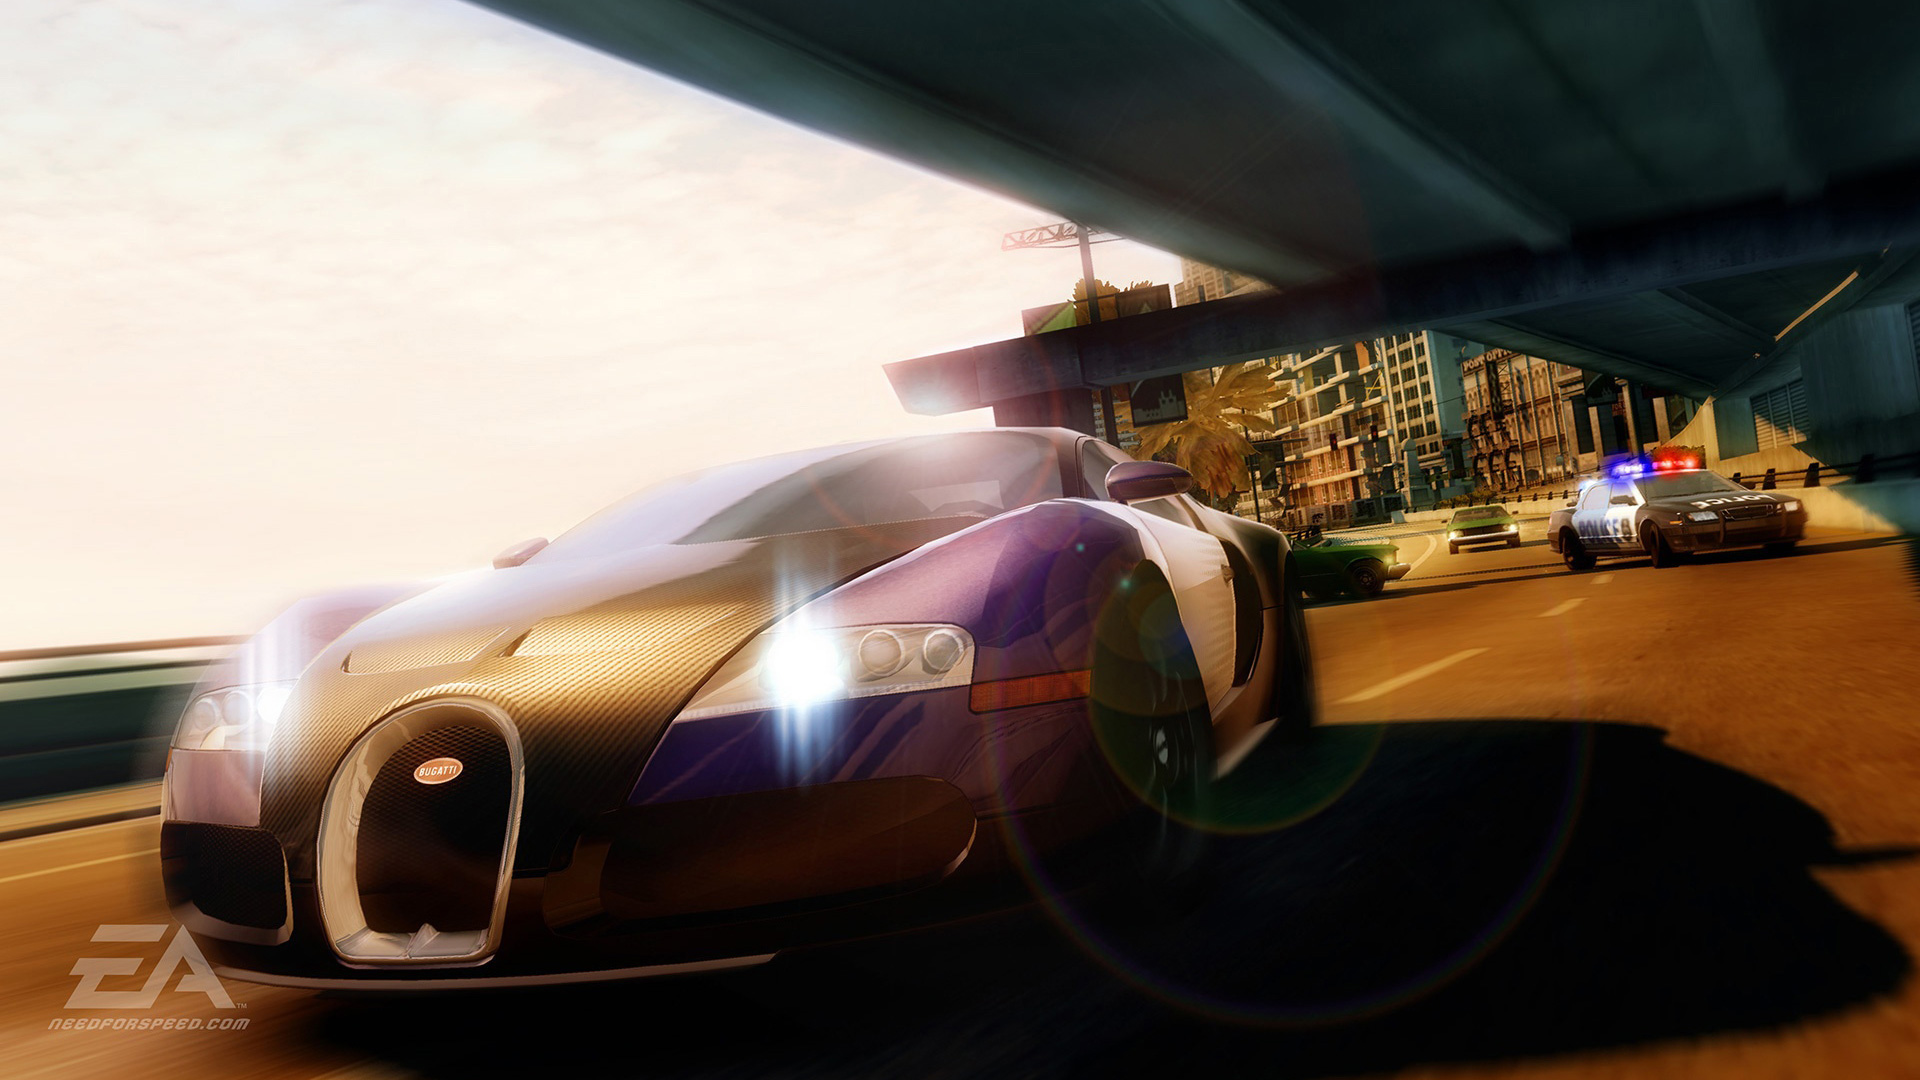 Need for Speed: The Run Wallpaper in 1920x1080